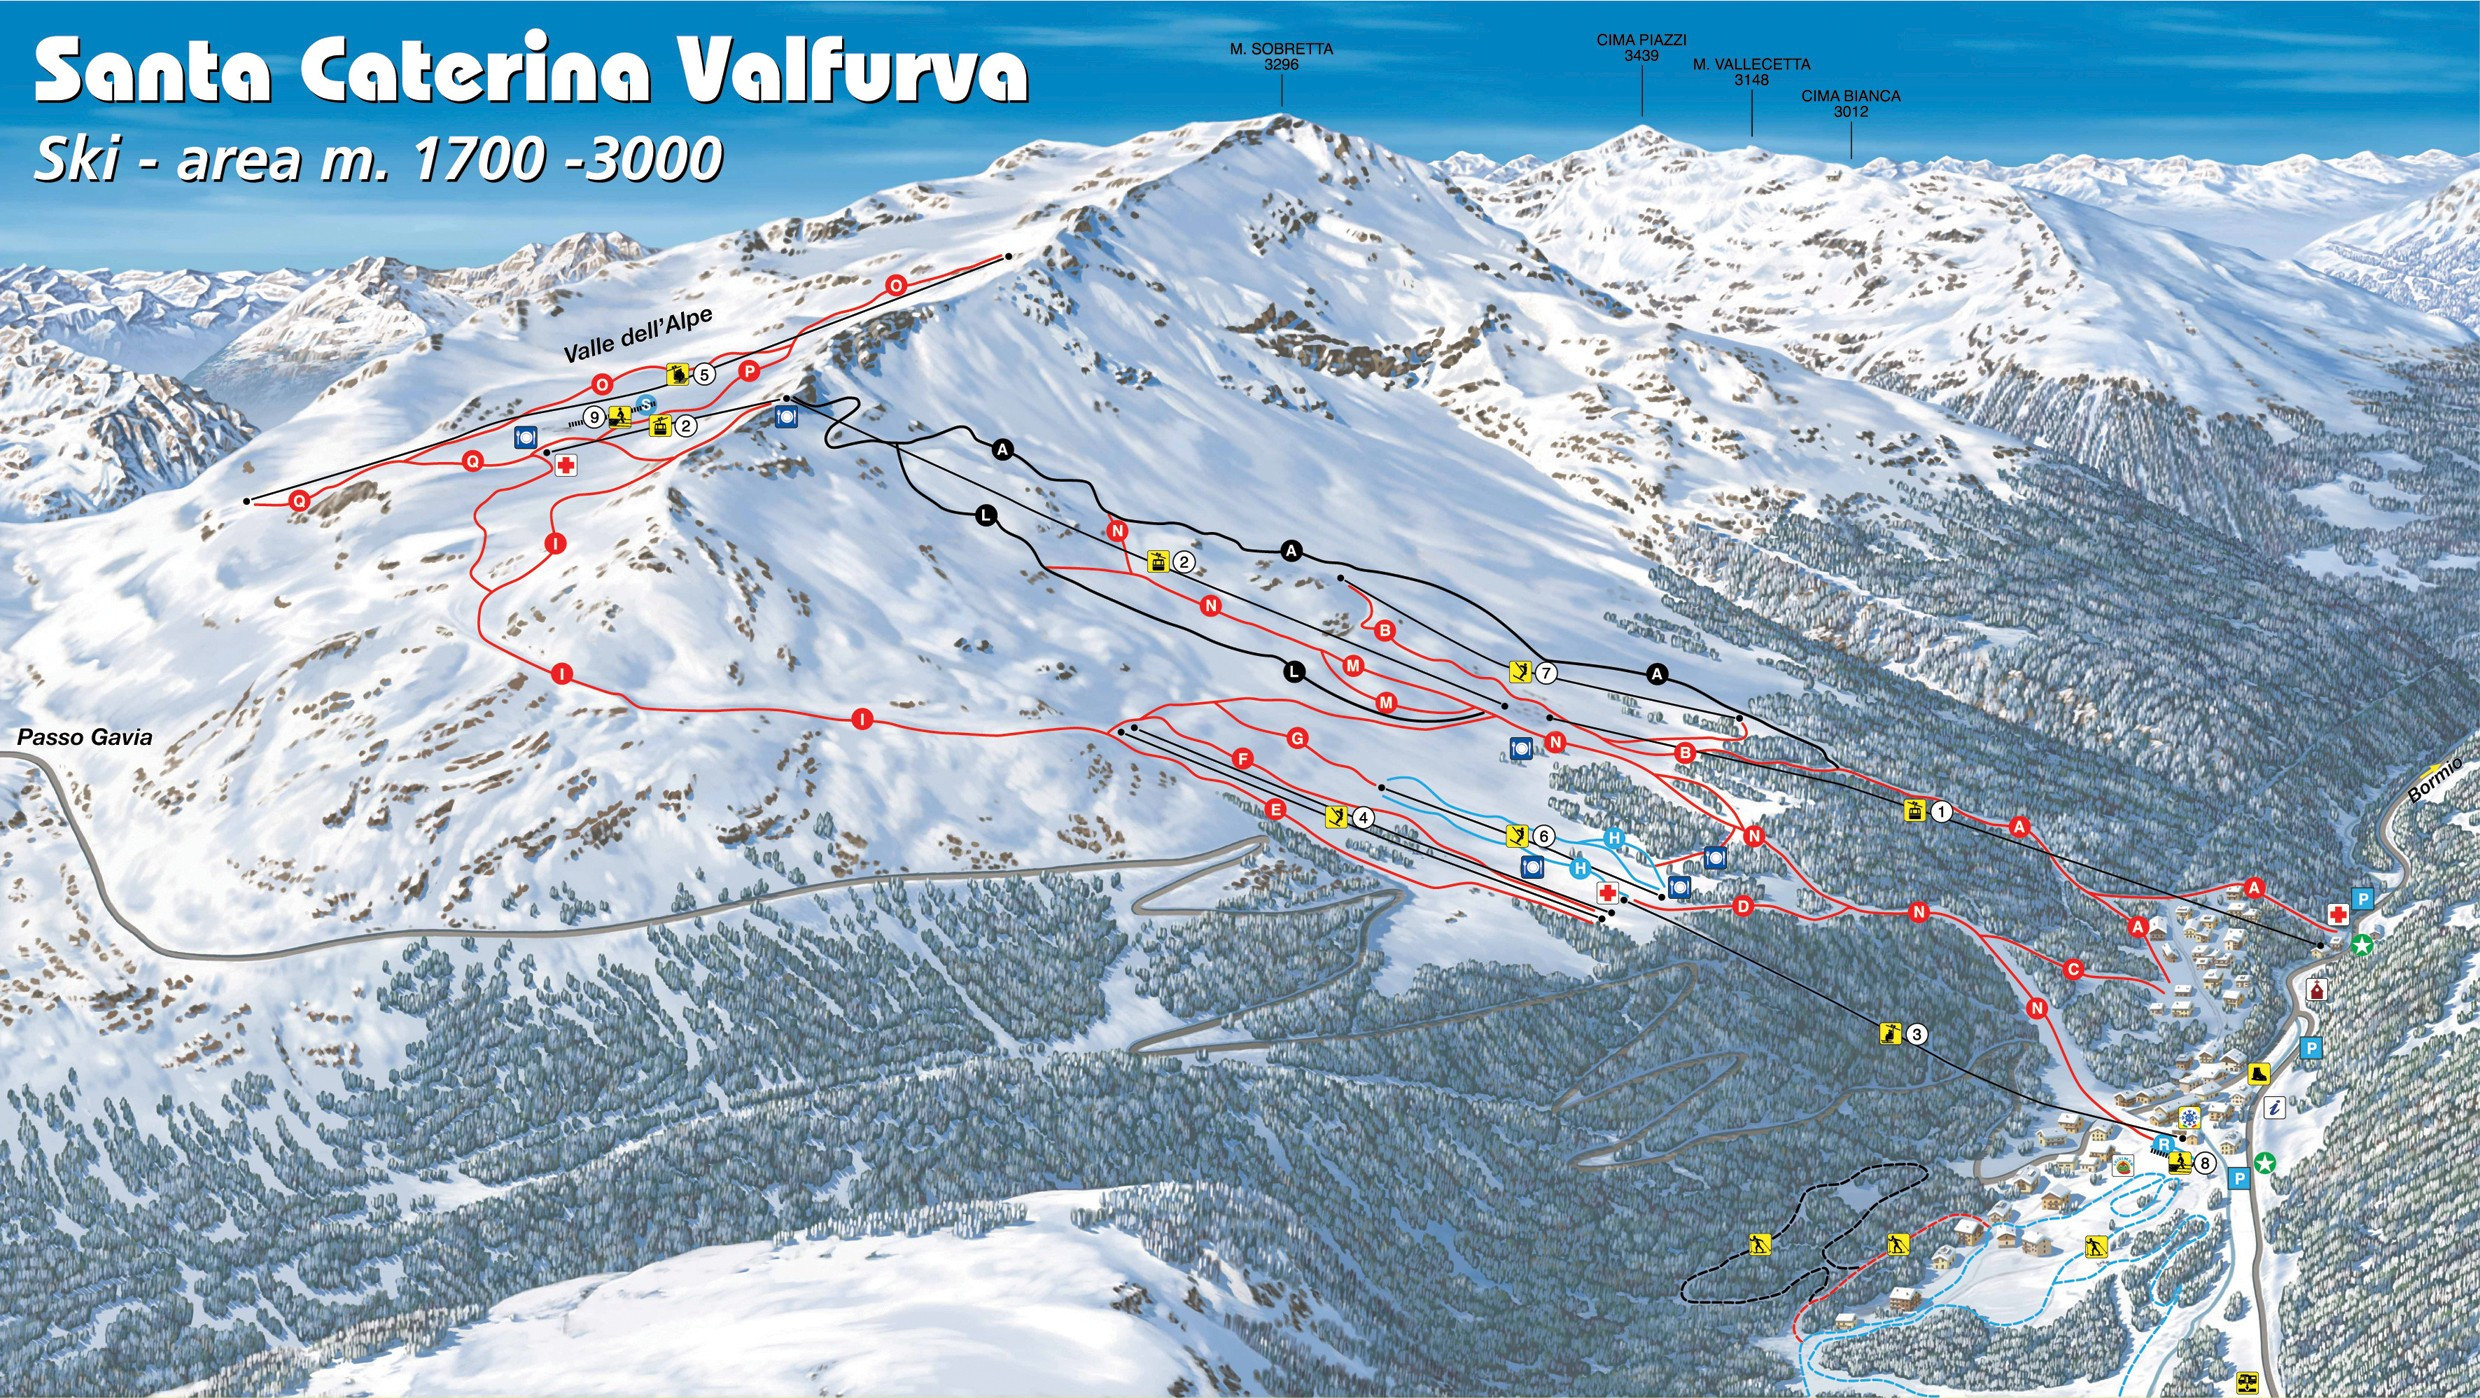 Ski Virginia Map.Santa Caterina Valfurva Trail Map Piste Map Panoramic Mountain Map